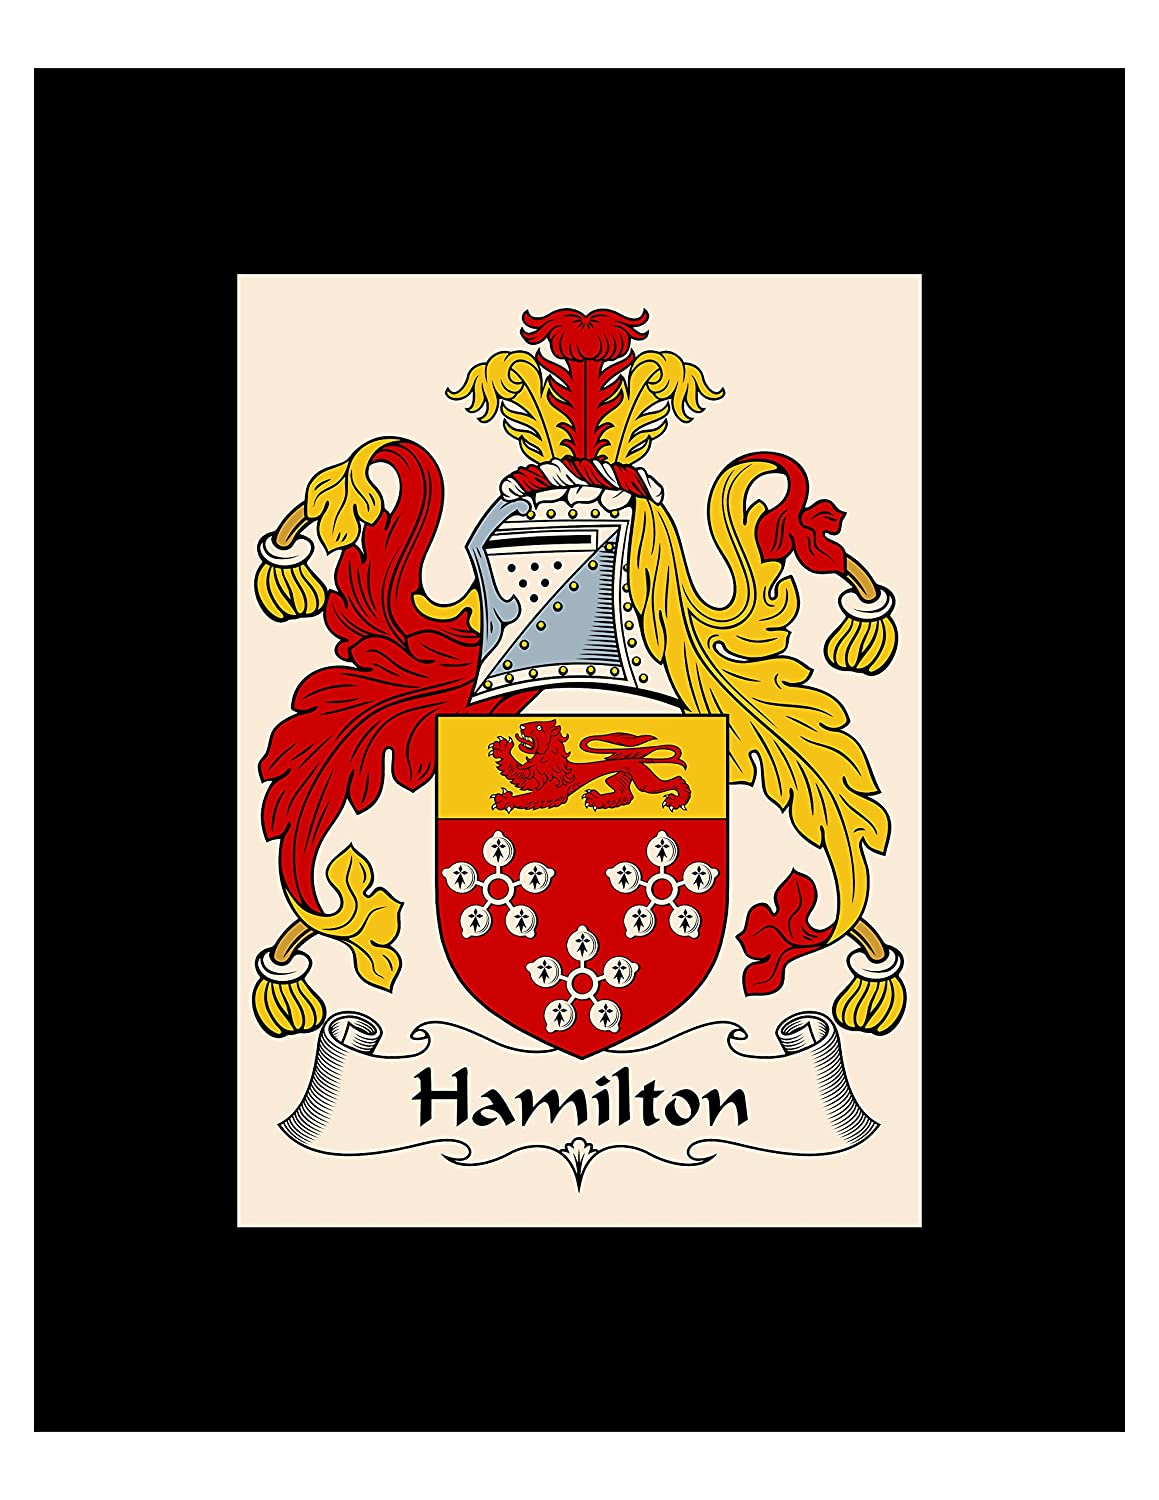 Amazon.com - Carpe Diem Designs Hamilton Coat of Arms/Hamilton Family Crest 8X10 Photo Plaque, Personalized Gift, Wedding Gift -